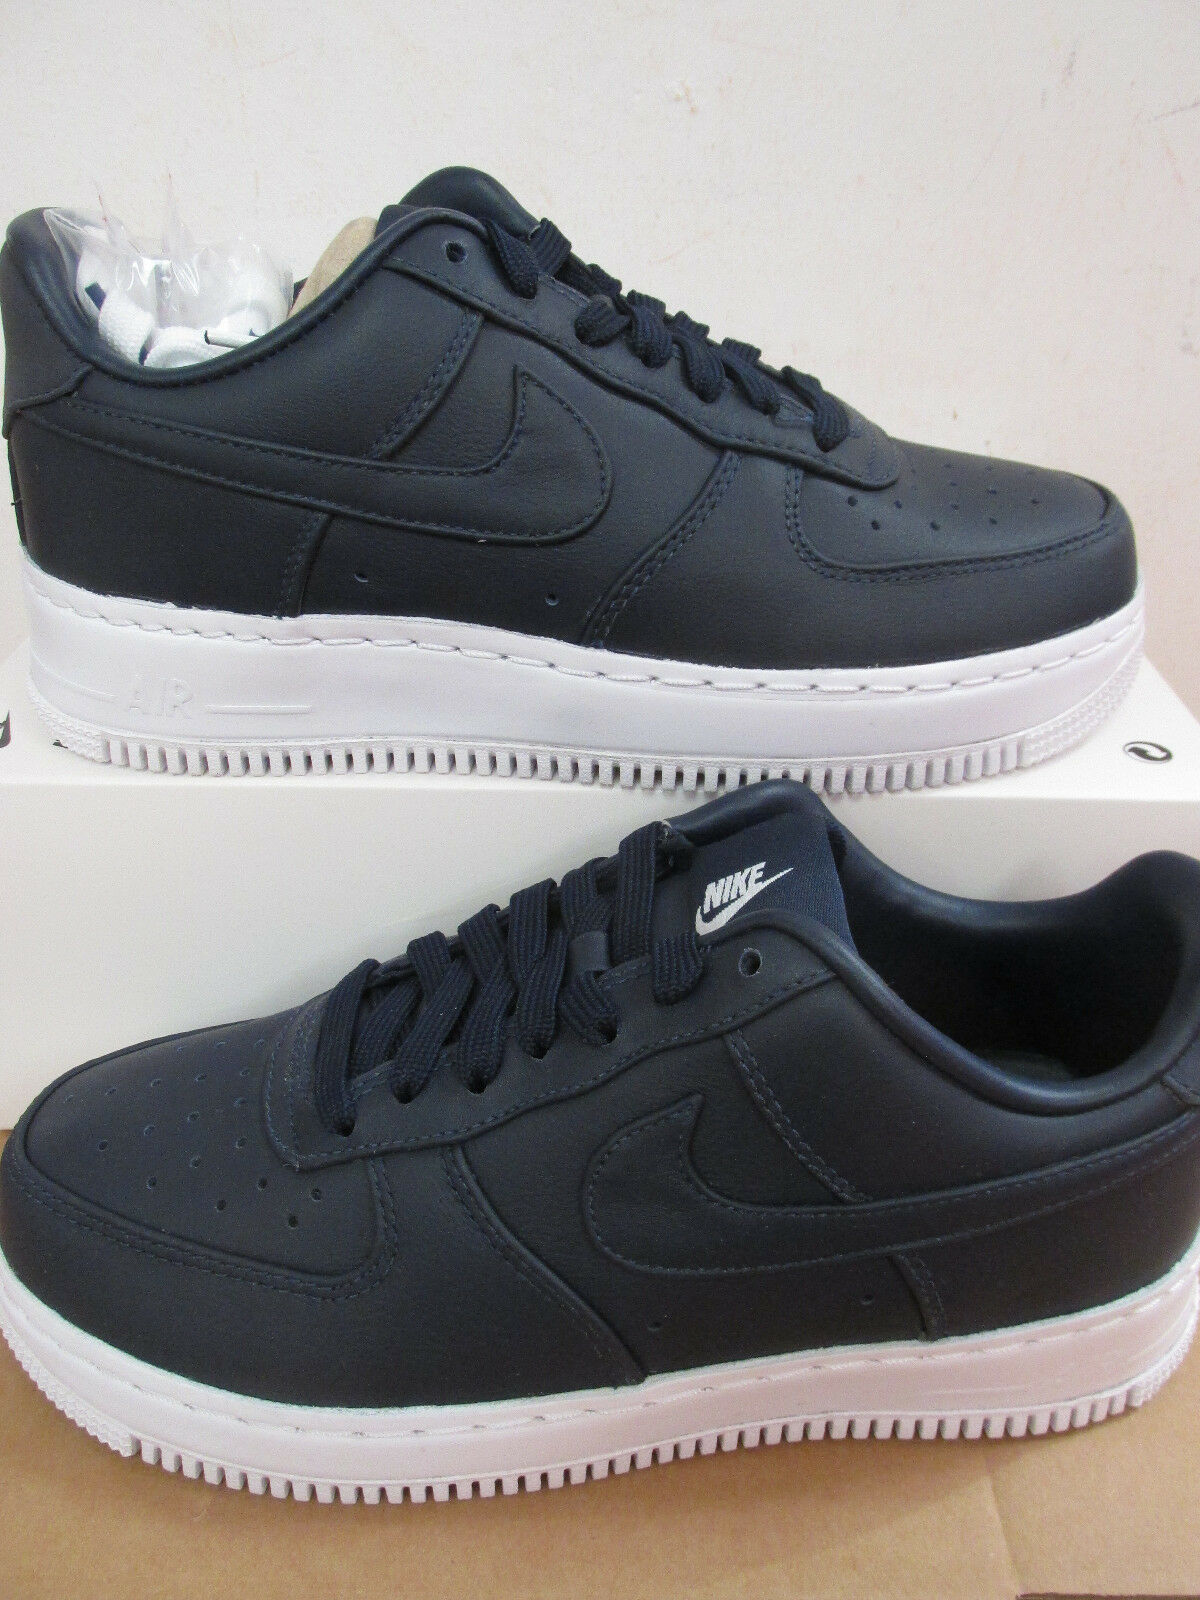 Nikelab Air Running Force 1 Low hombre Running Air Zapatillas zapatillas clearance cece07